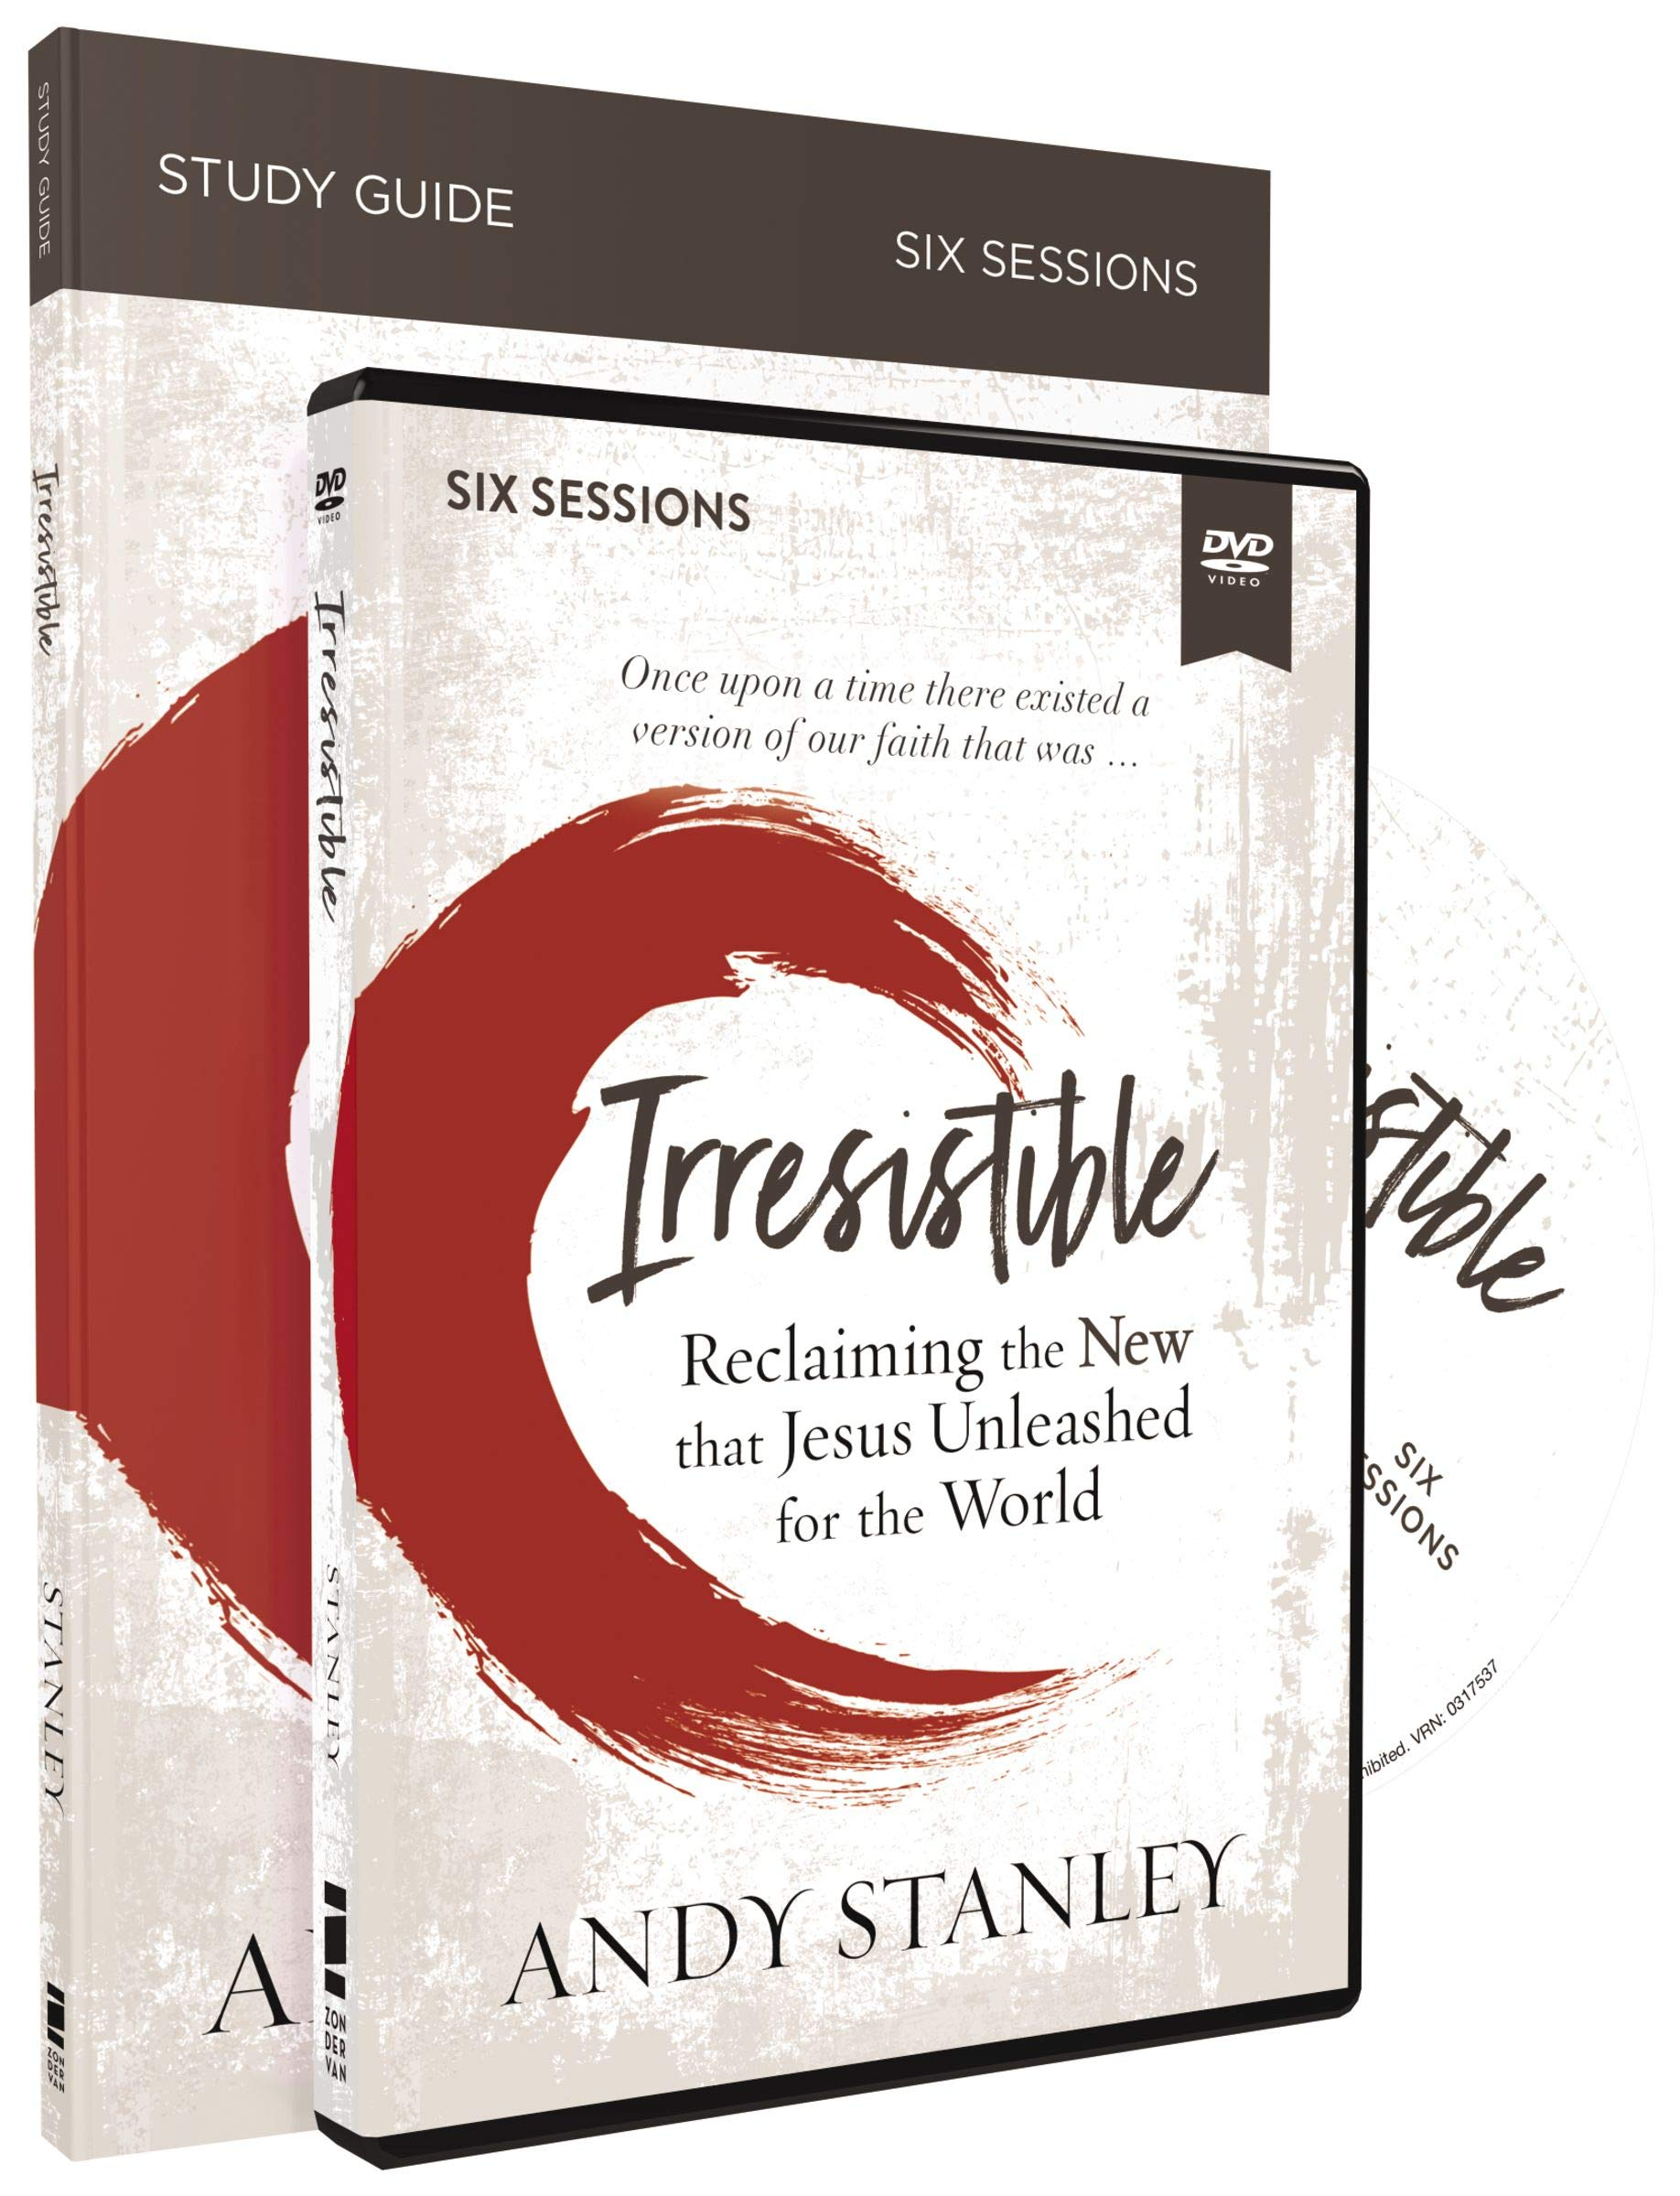 Irresistible Study Guide DVD Reclaiming